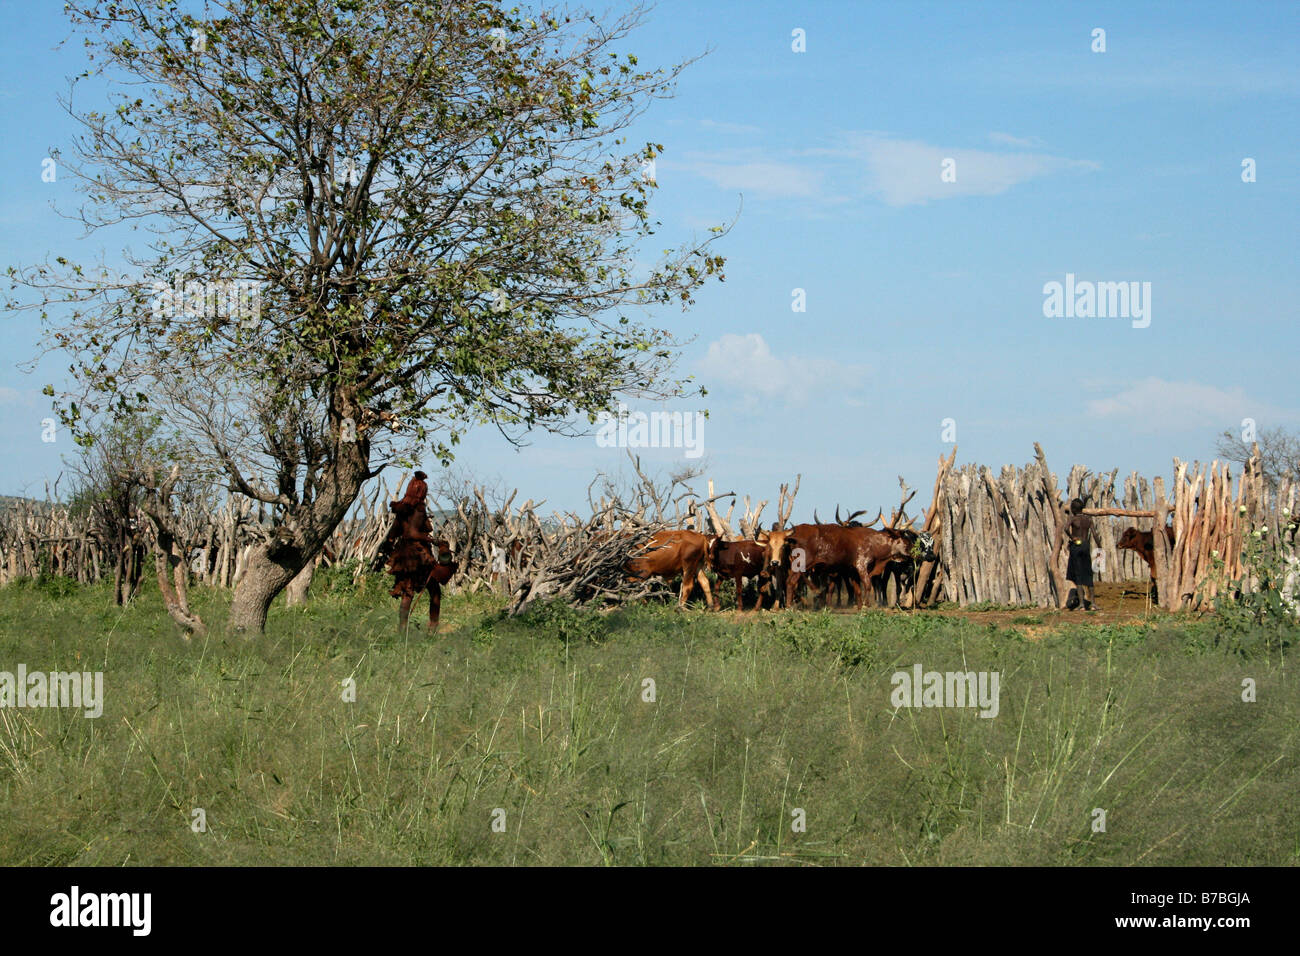 Namibia, Himba, Women, Cattle, Wood, Fence, Kraal, Cows - Stock Image